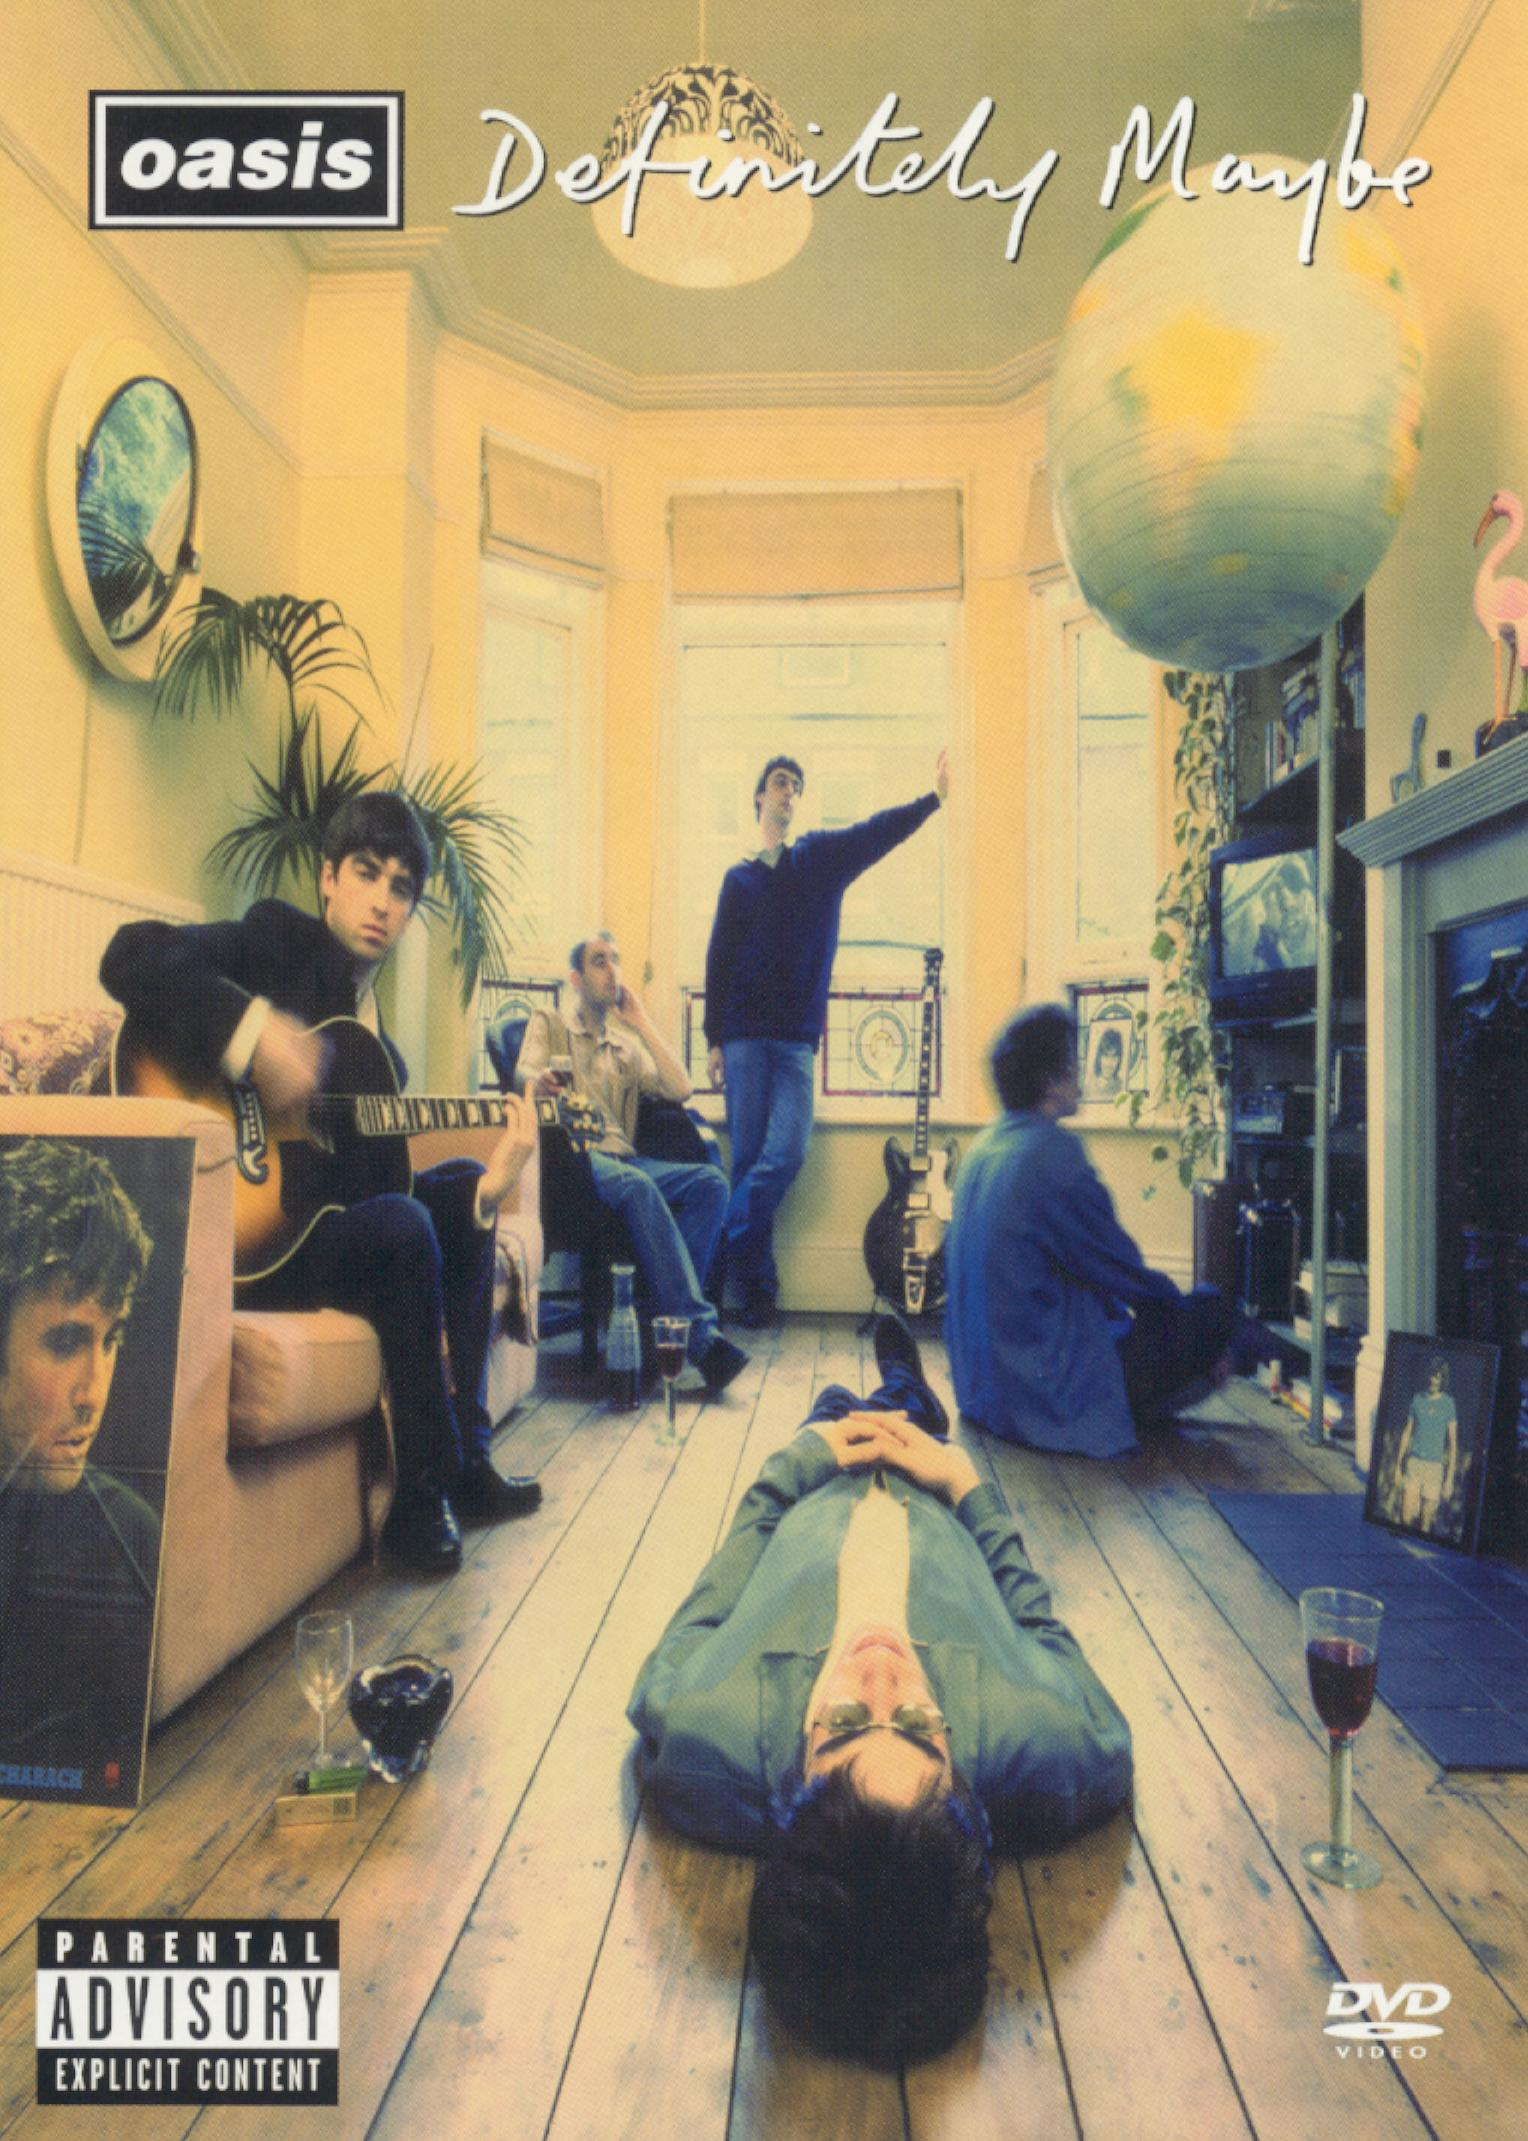 Oasis: Definitely Maybe - The DVD